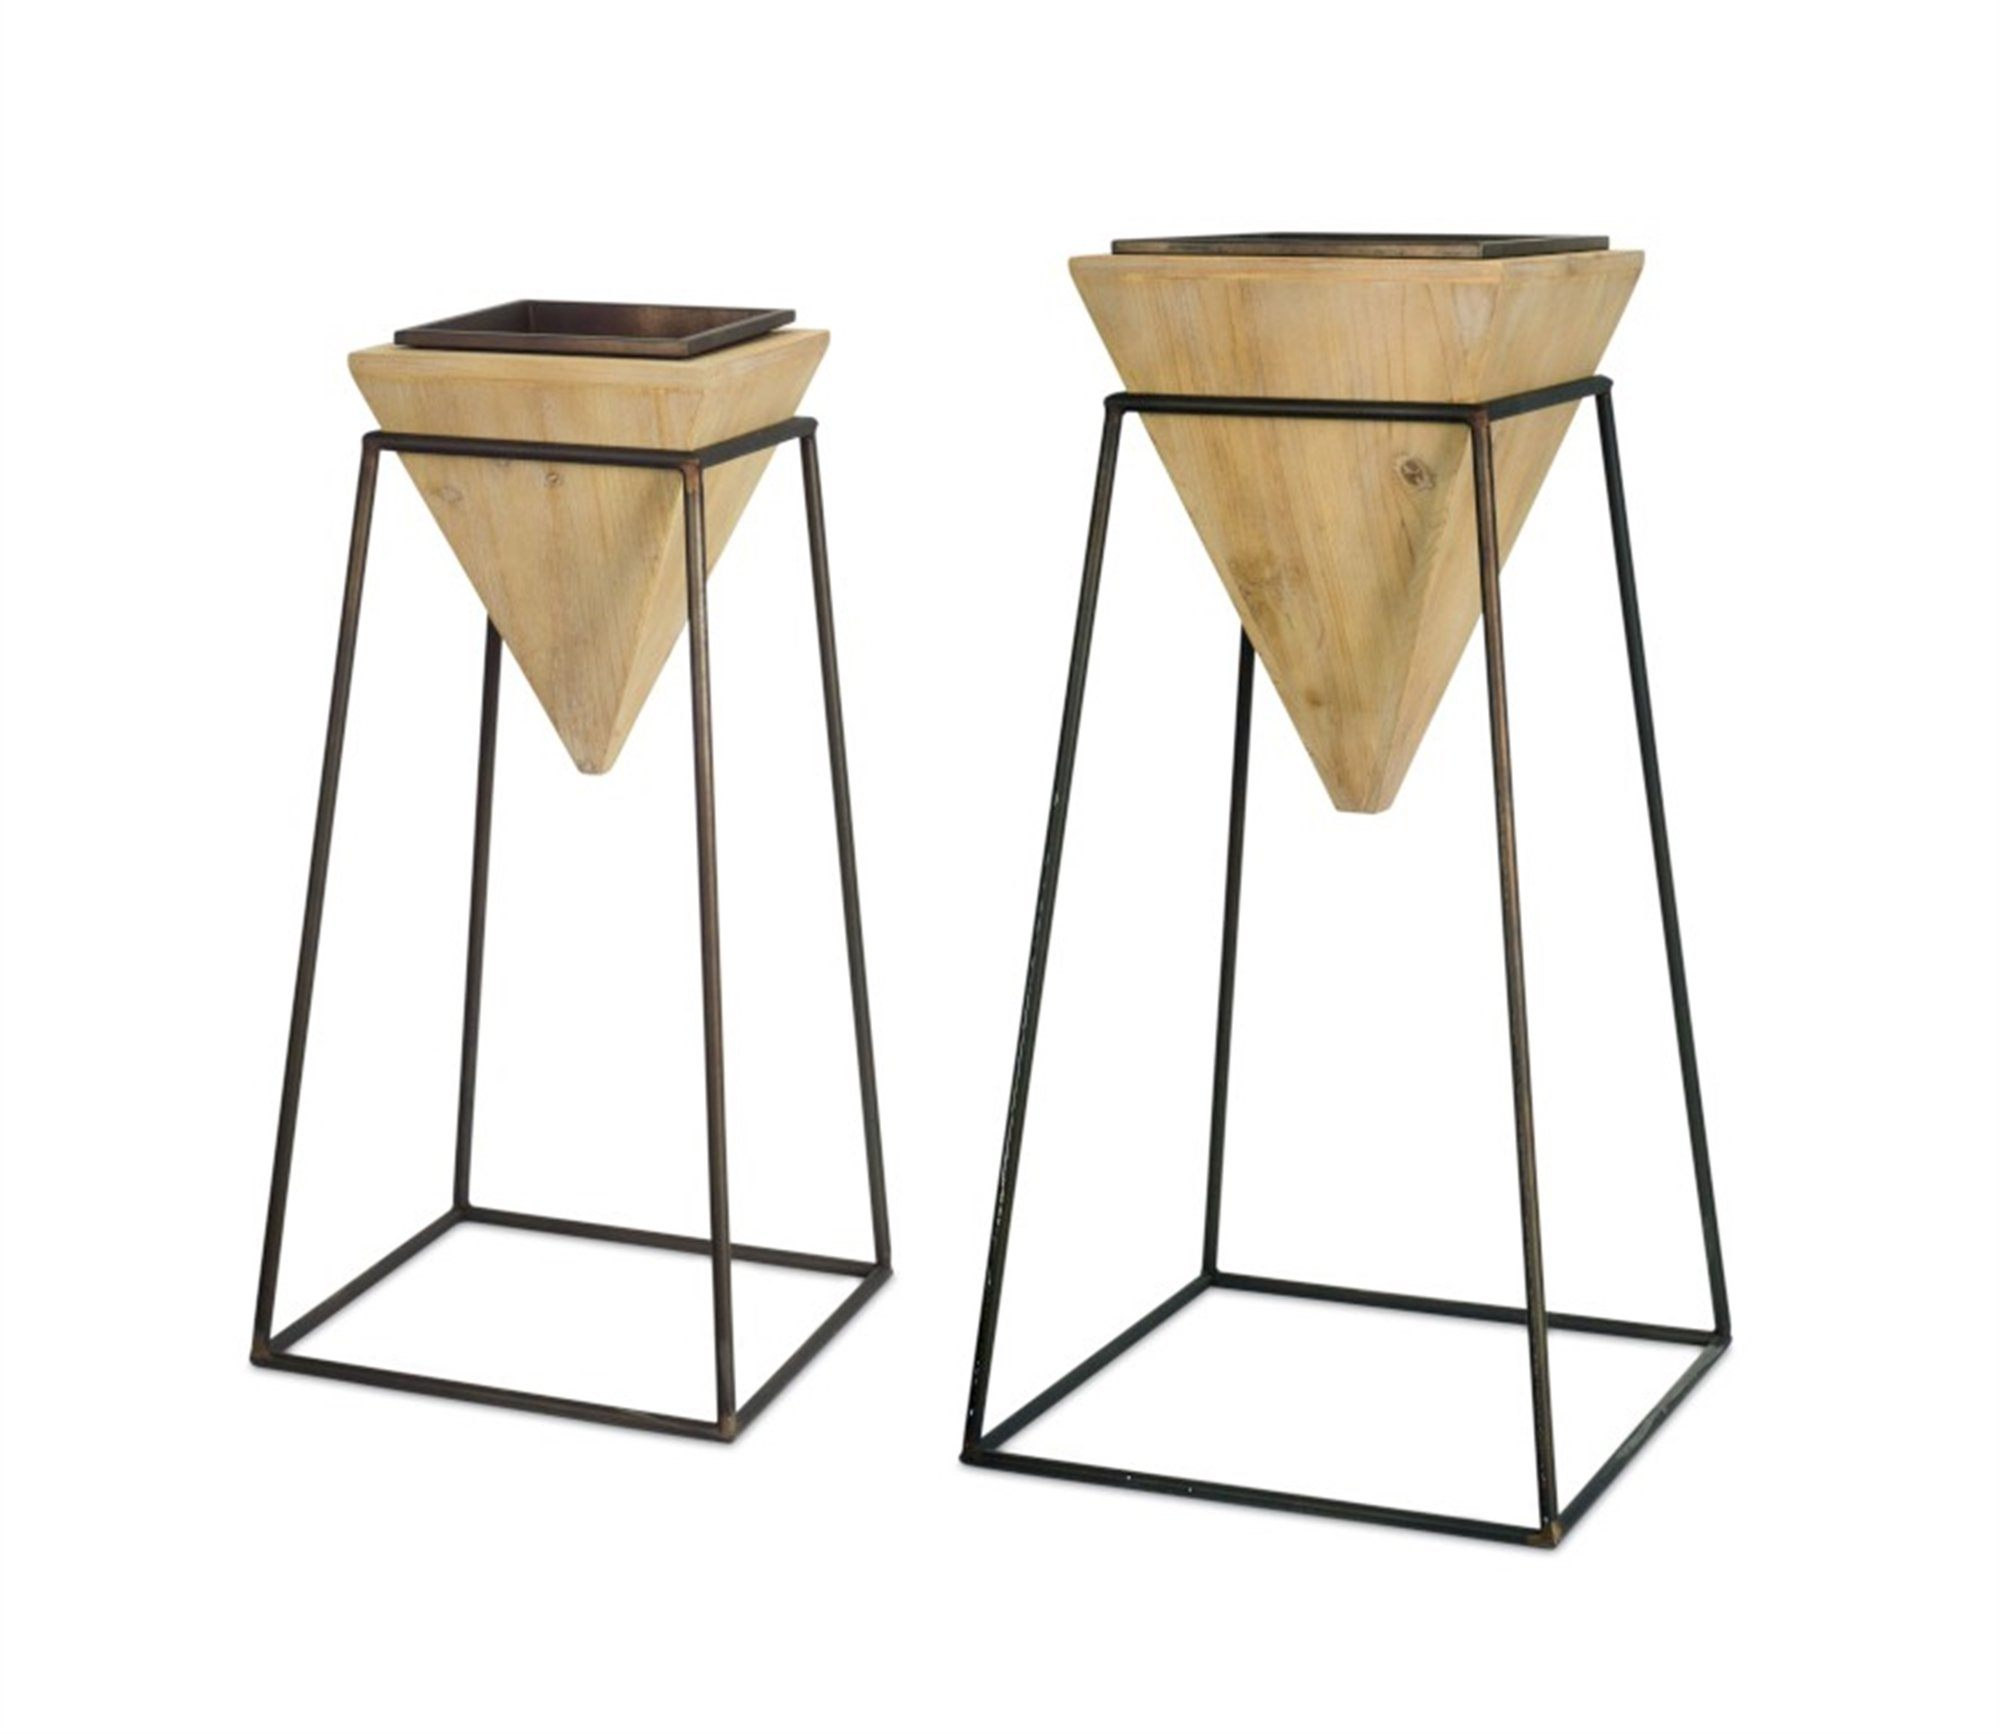 Giza Wood & Metal Planters (Set of 2) Melrose